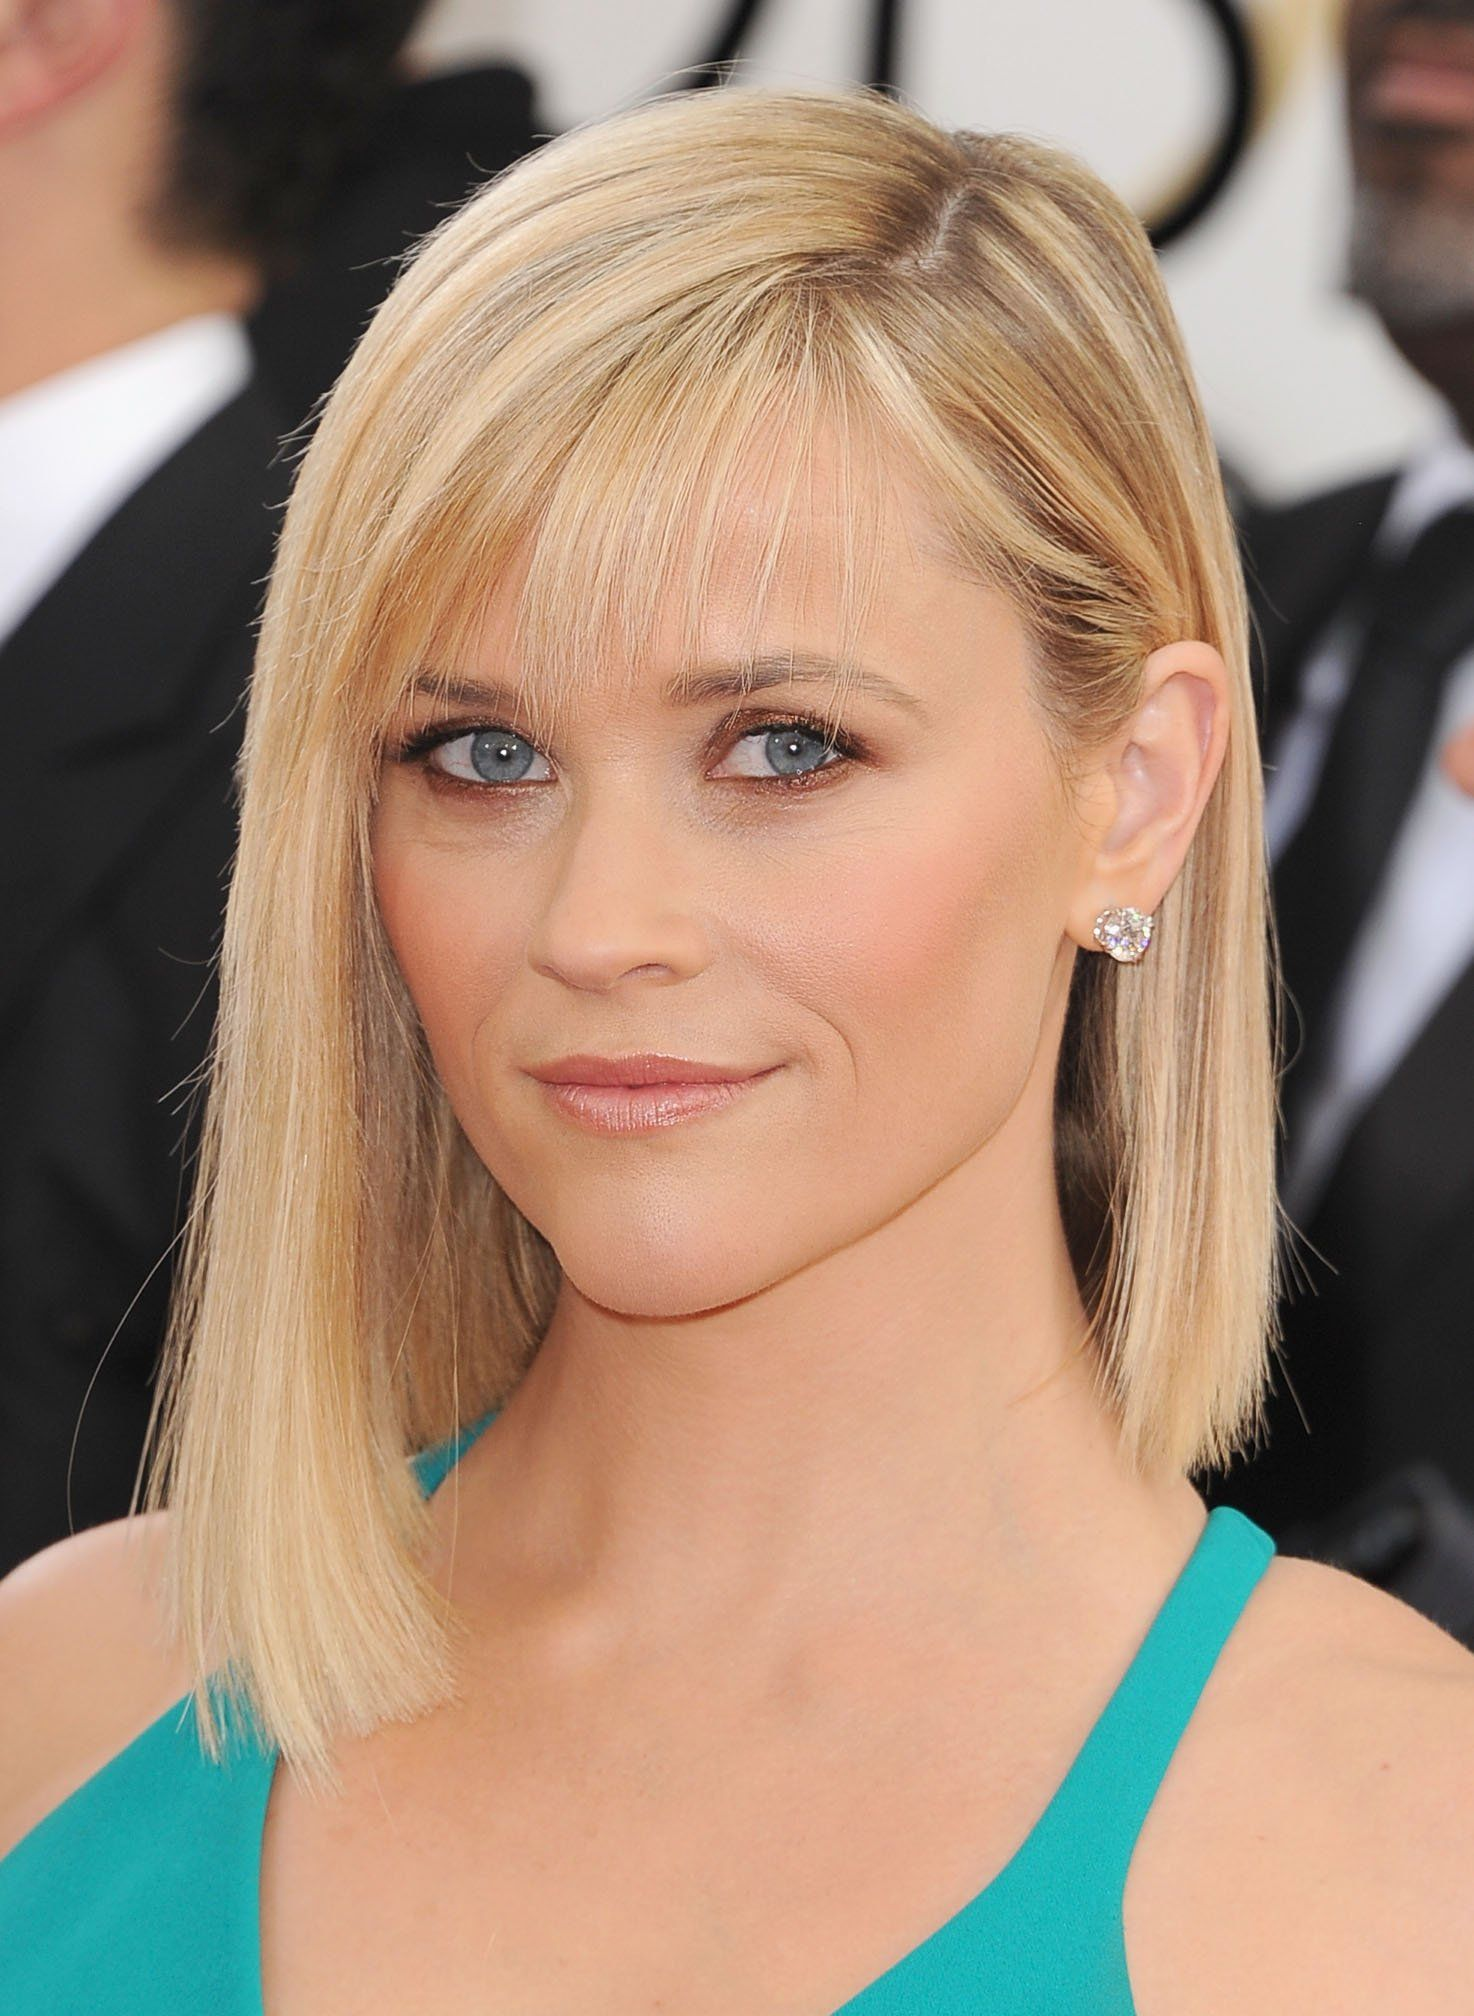 Reese Witherspoon Bob Haircut - what hairstyle is best for me